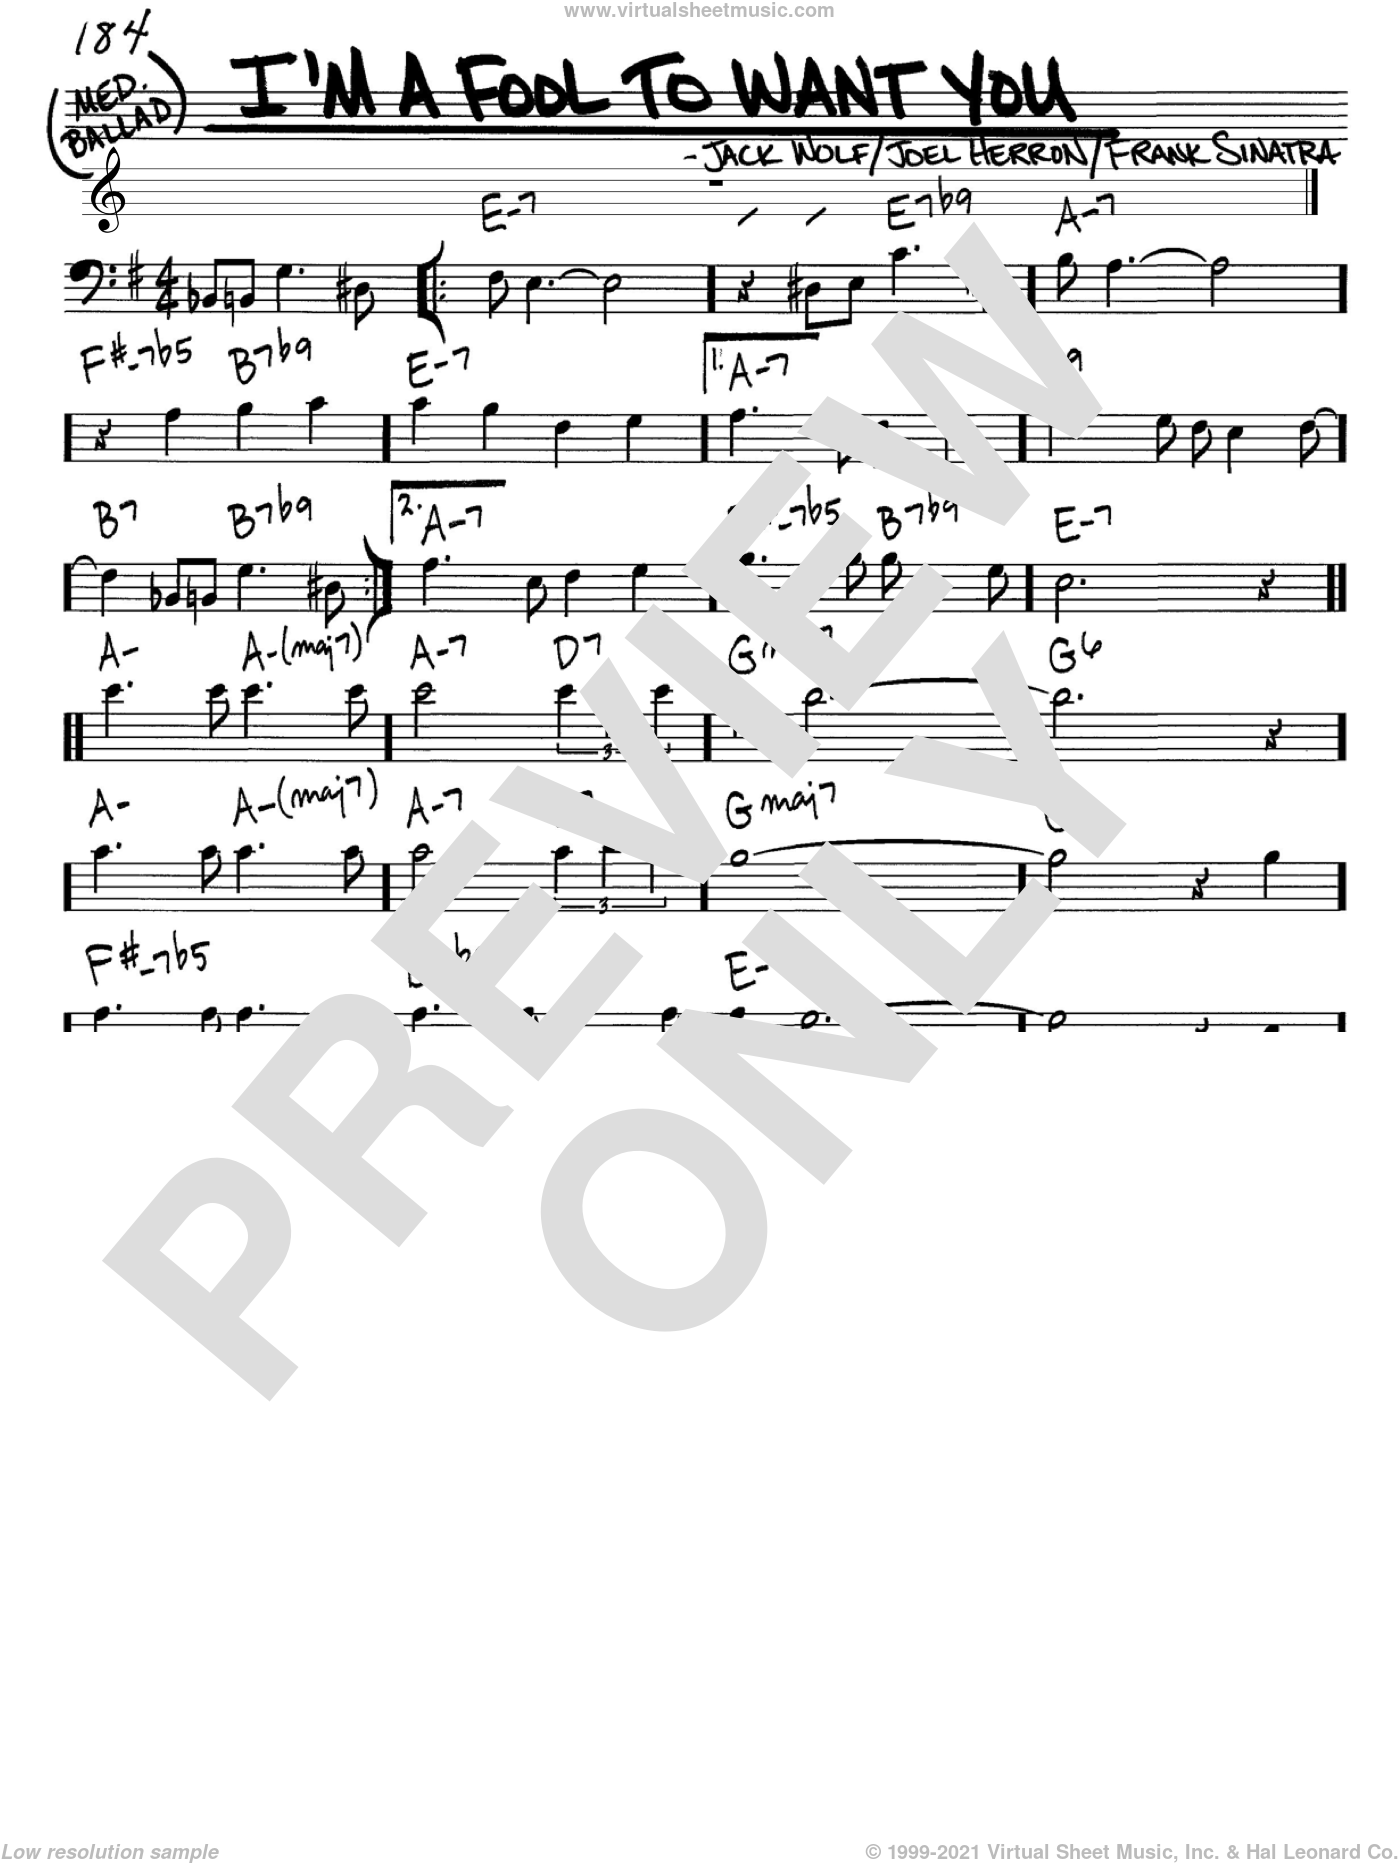 I'm A Fool To Want You sheet music for voice and other instruments (bass clef) by Frank Sinatra, Jack Wolf and Joel Herron, intermediate. Score Image Preview.